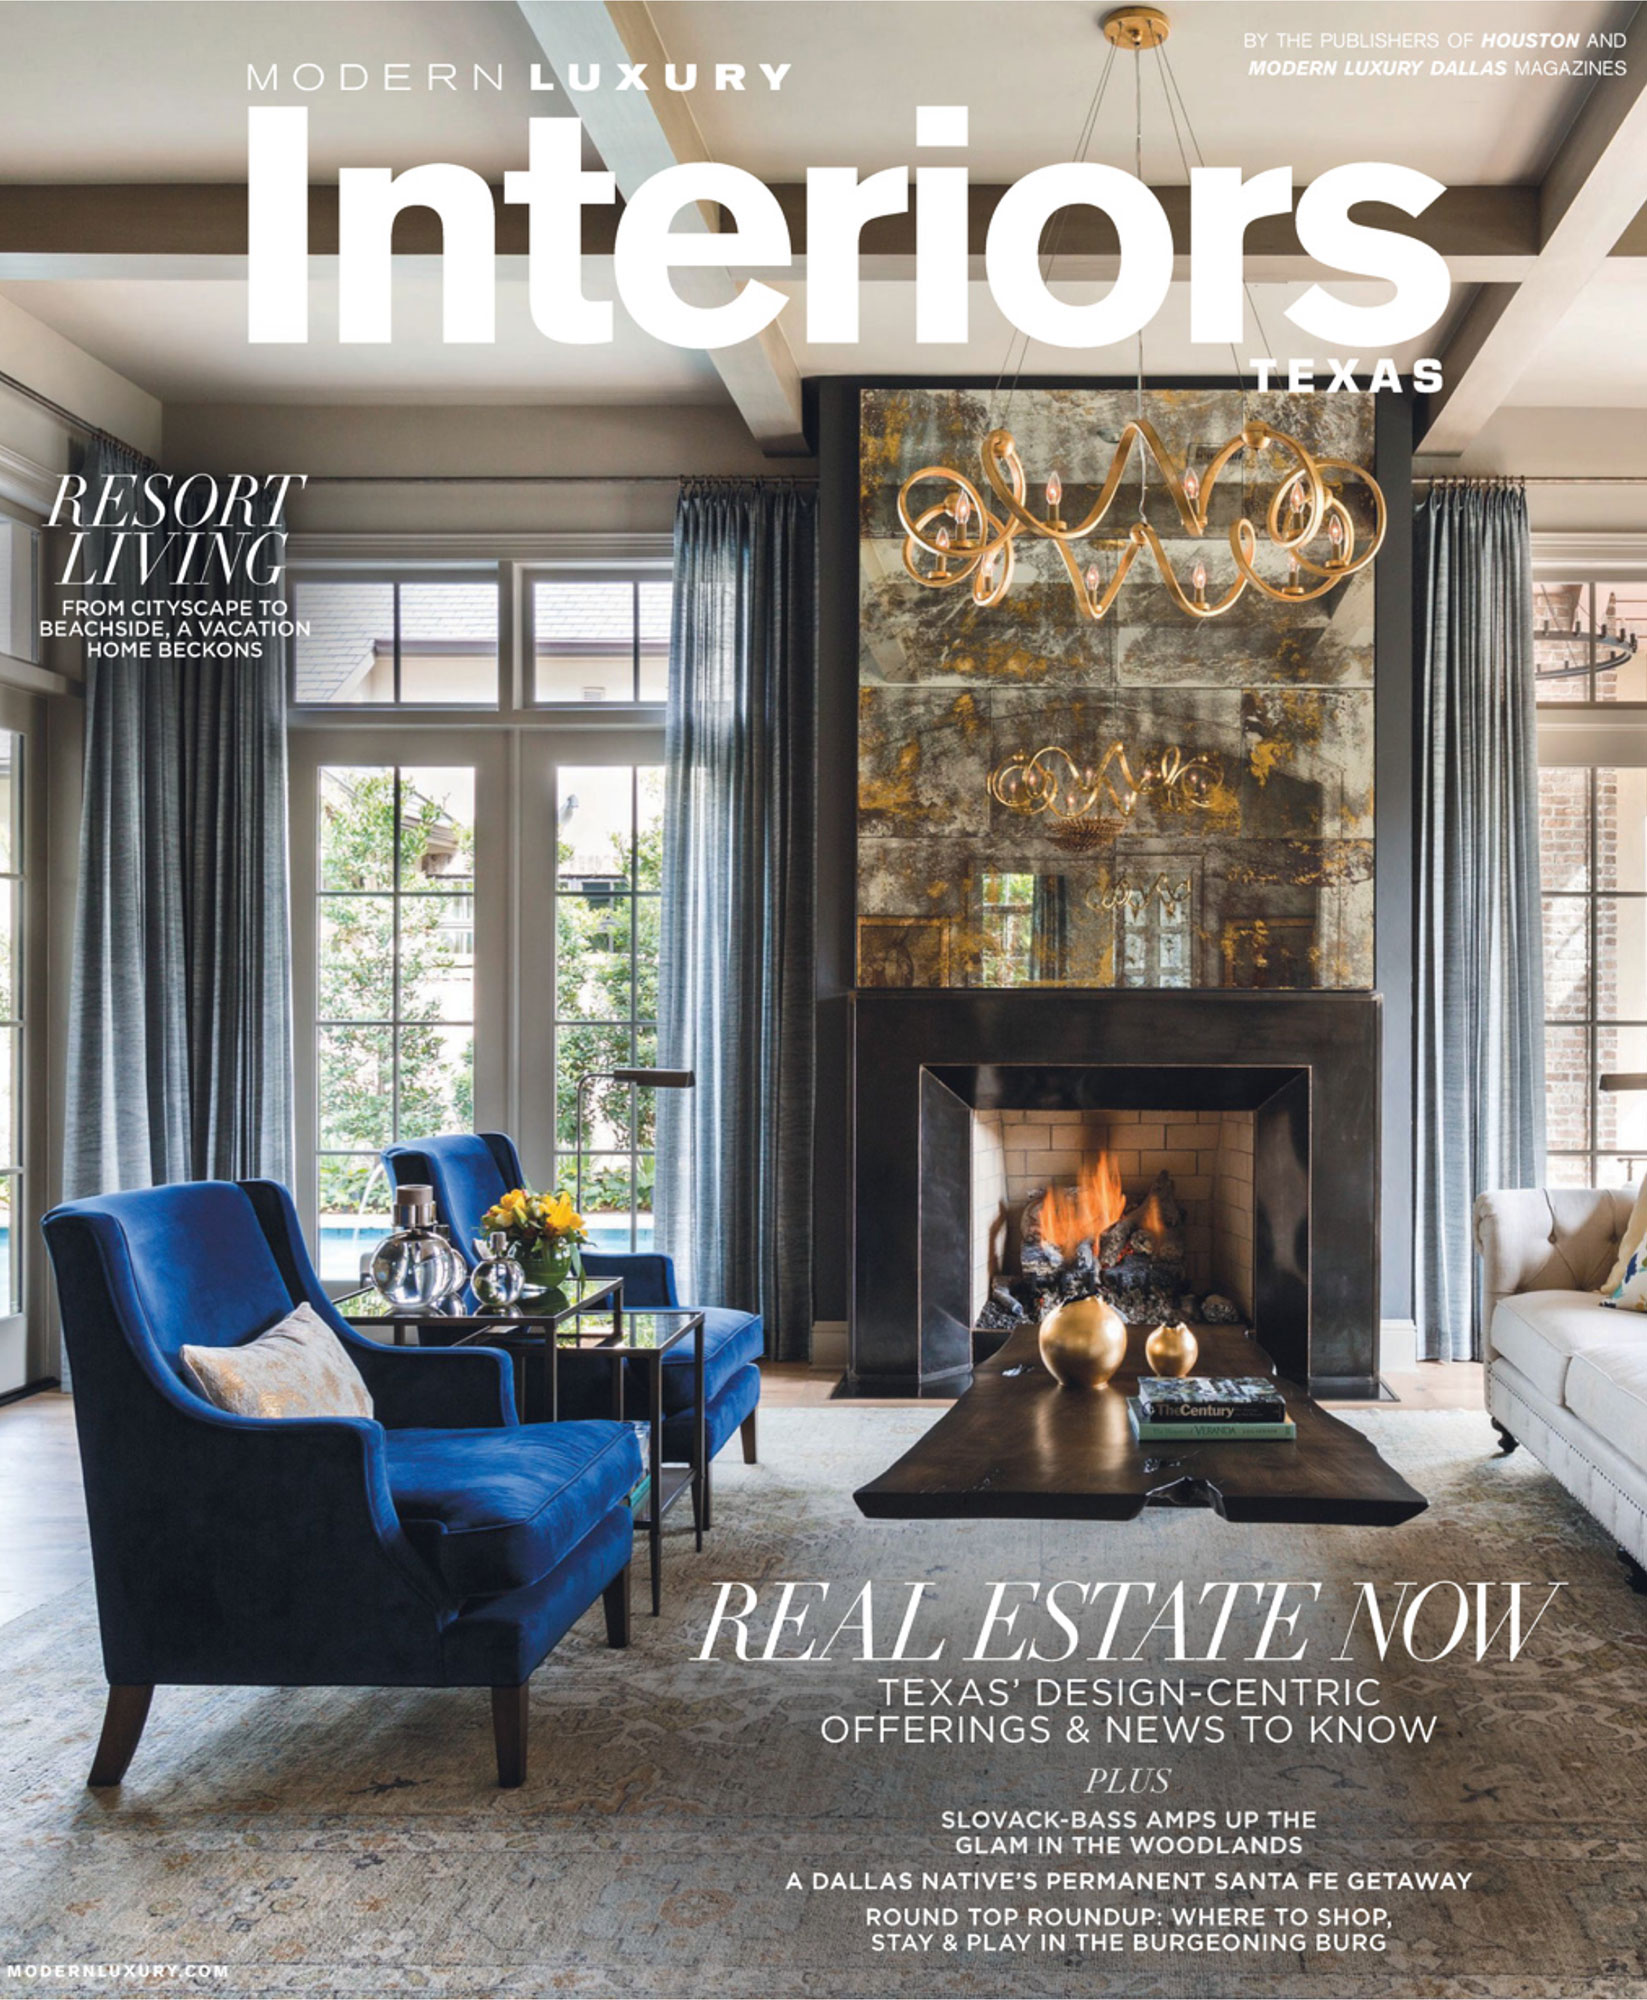 Modern Luxury Interiors - Magazine Photography - Julie Soefer Photography